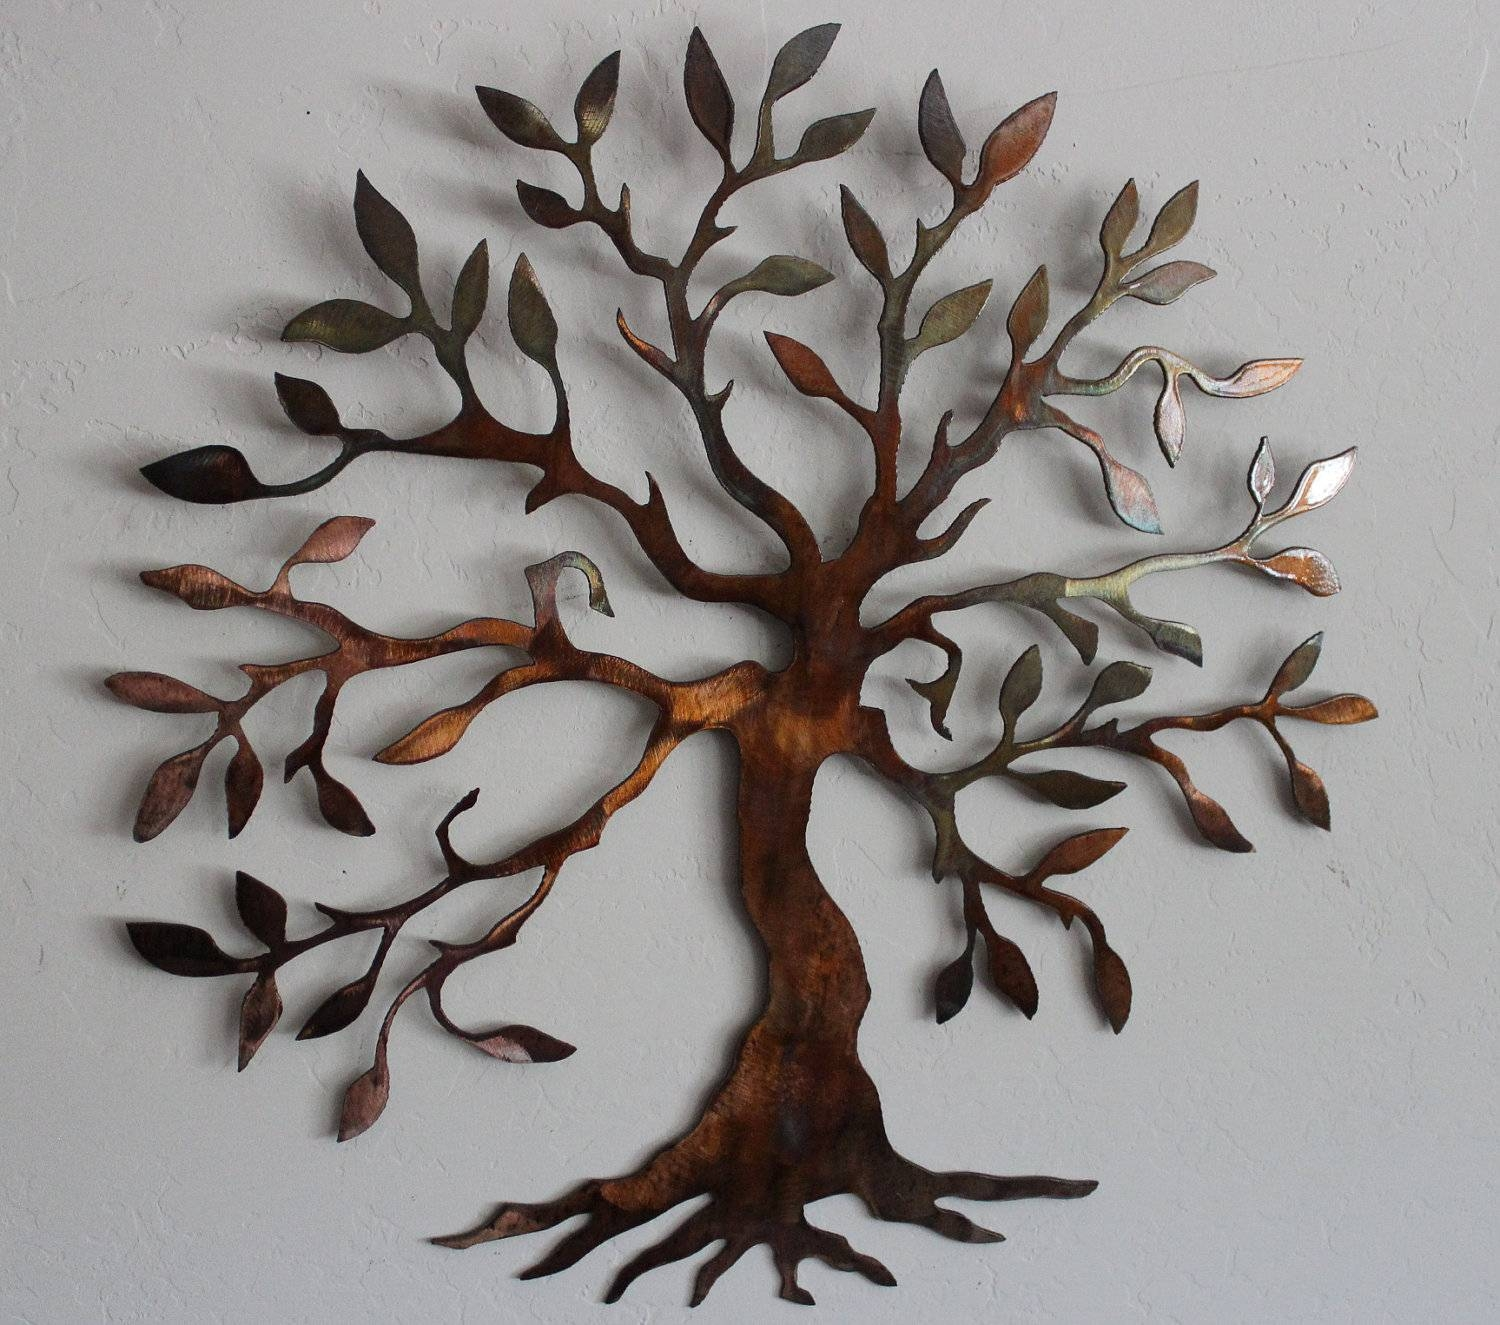 Charming Tree Metal Wall Art Decor Sculpture Design~ Popular Home Regarding Most Up To Date Metal Wall Art Decorating (View 9 of 20)